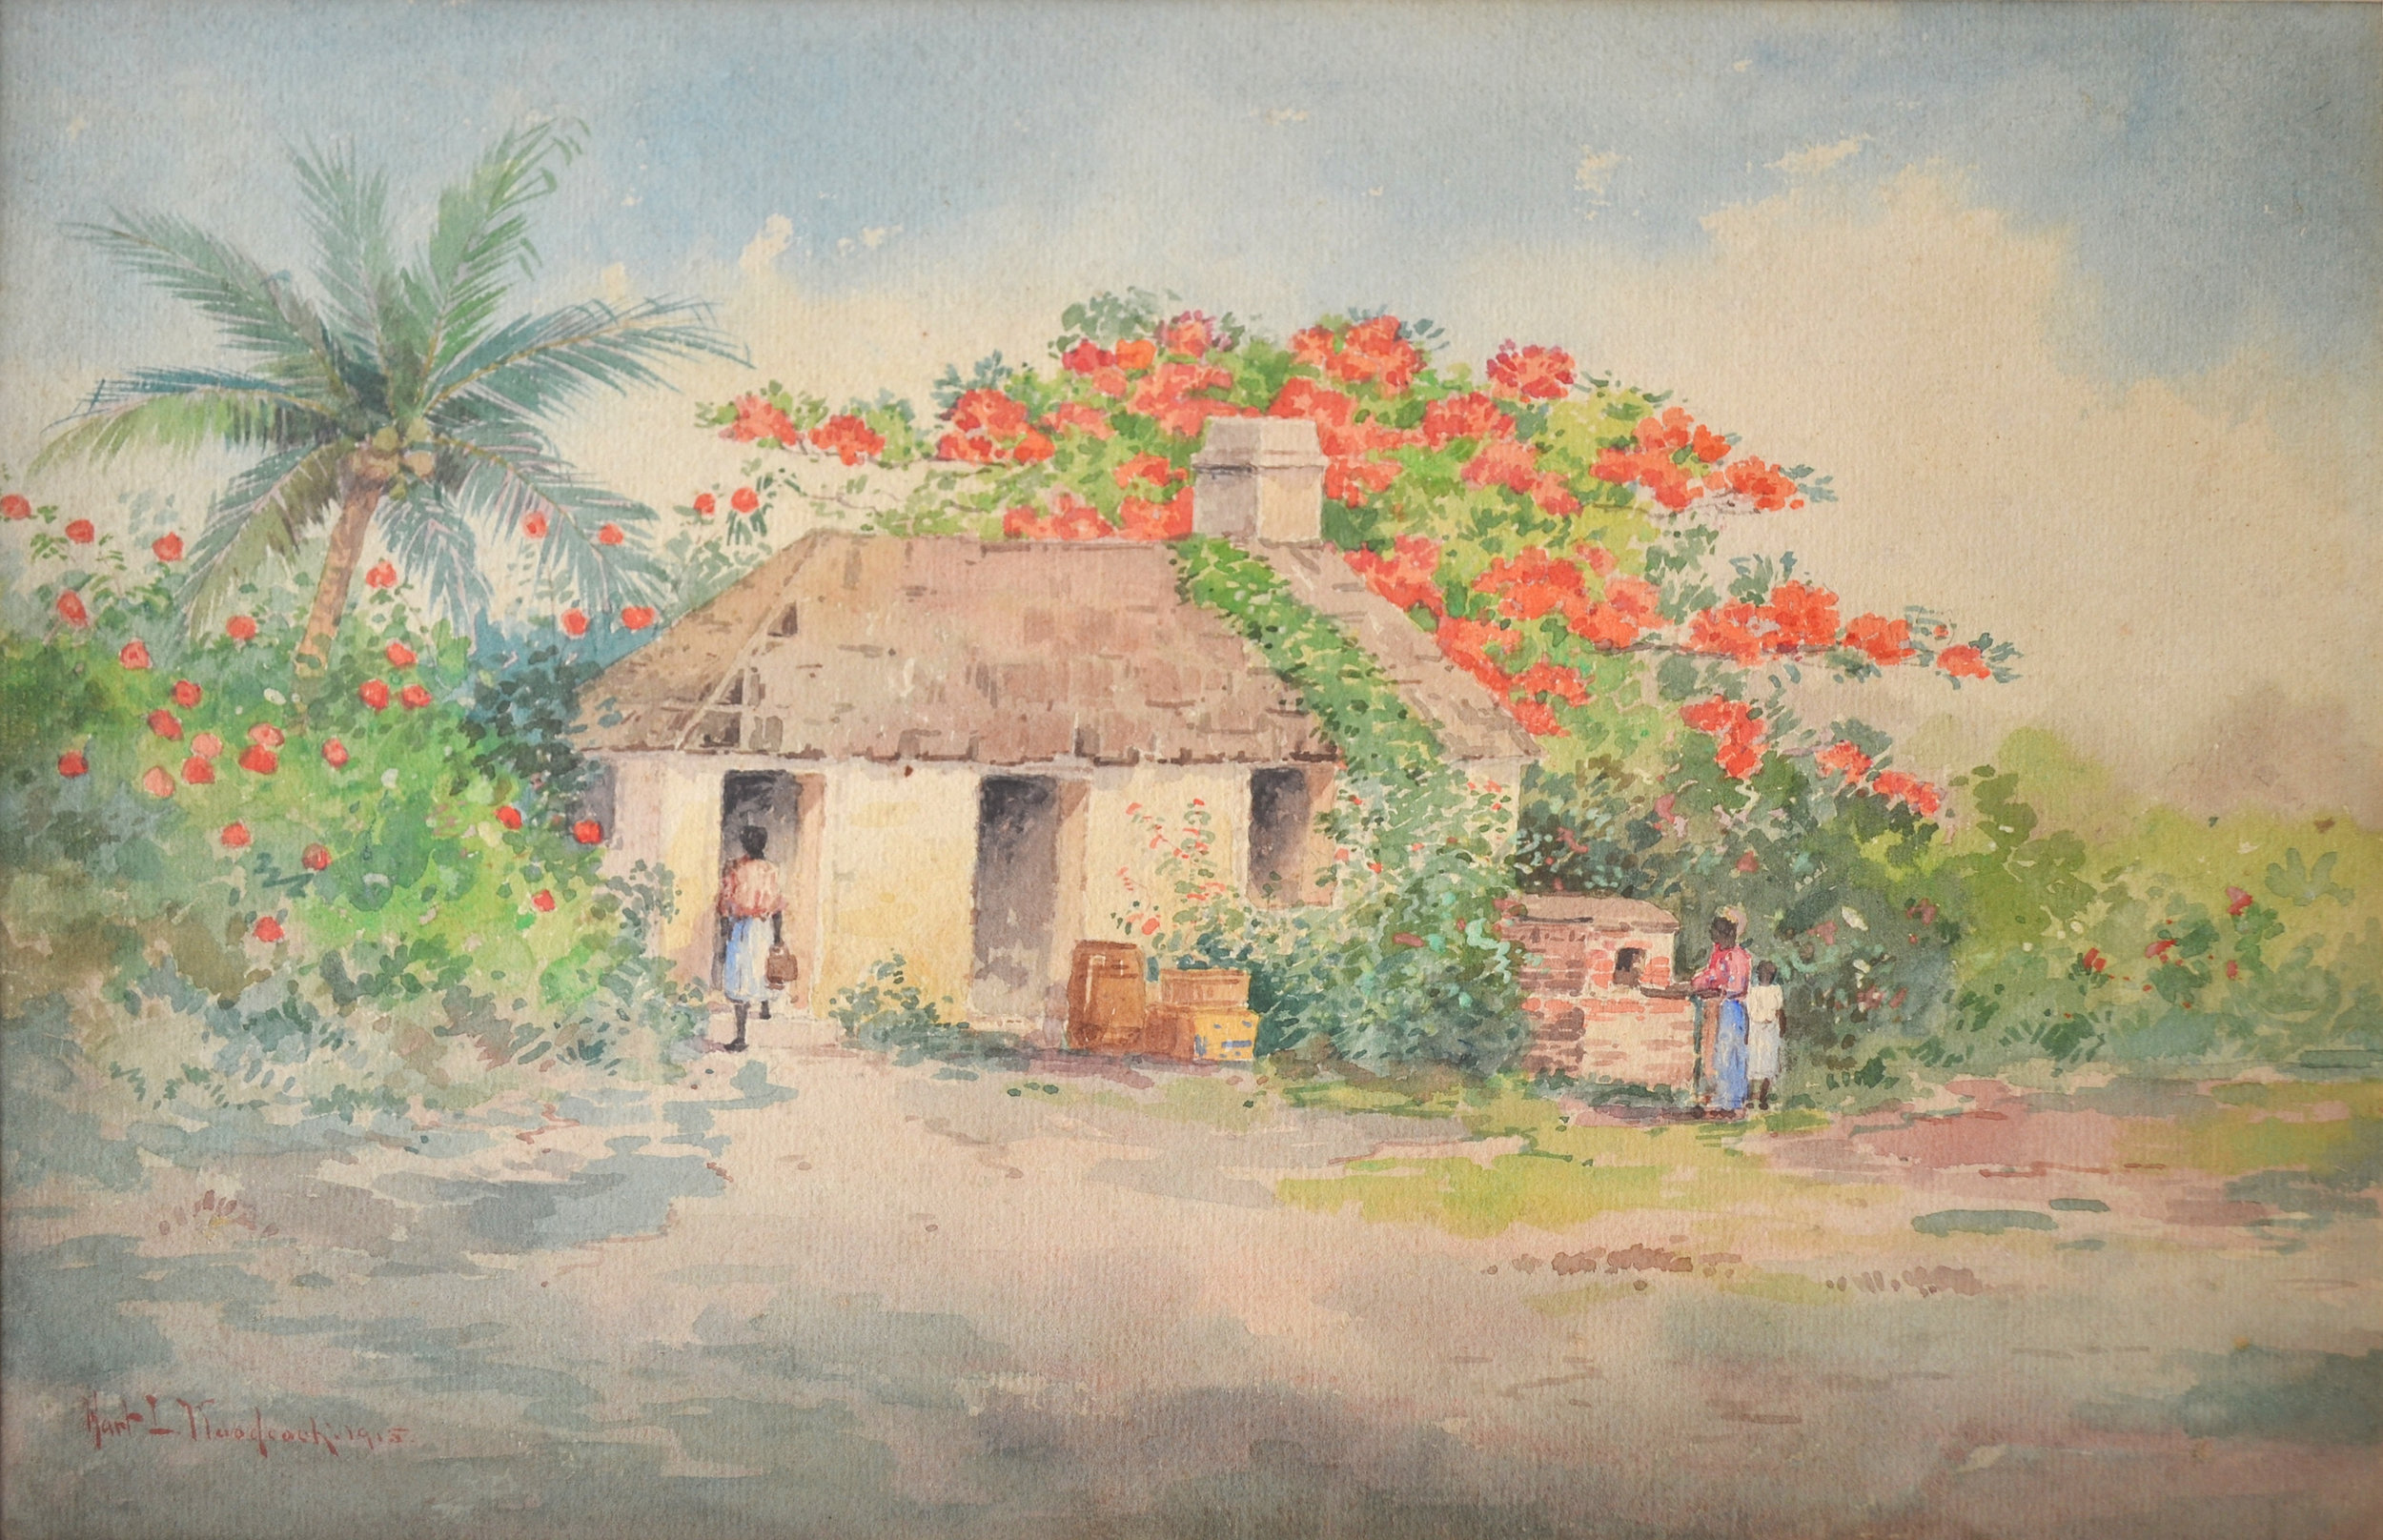 """""""Native Hut"""" (1915), Hartwell Leon Woodcock,watercolour on paper, 10 x 13 1/2. Part of the National Collection.Image courtesy of the NAGB."""